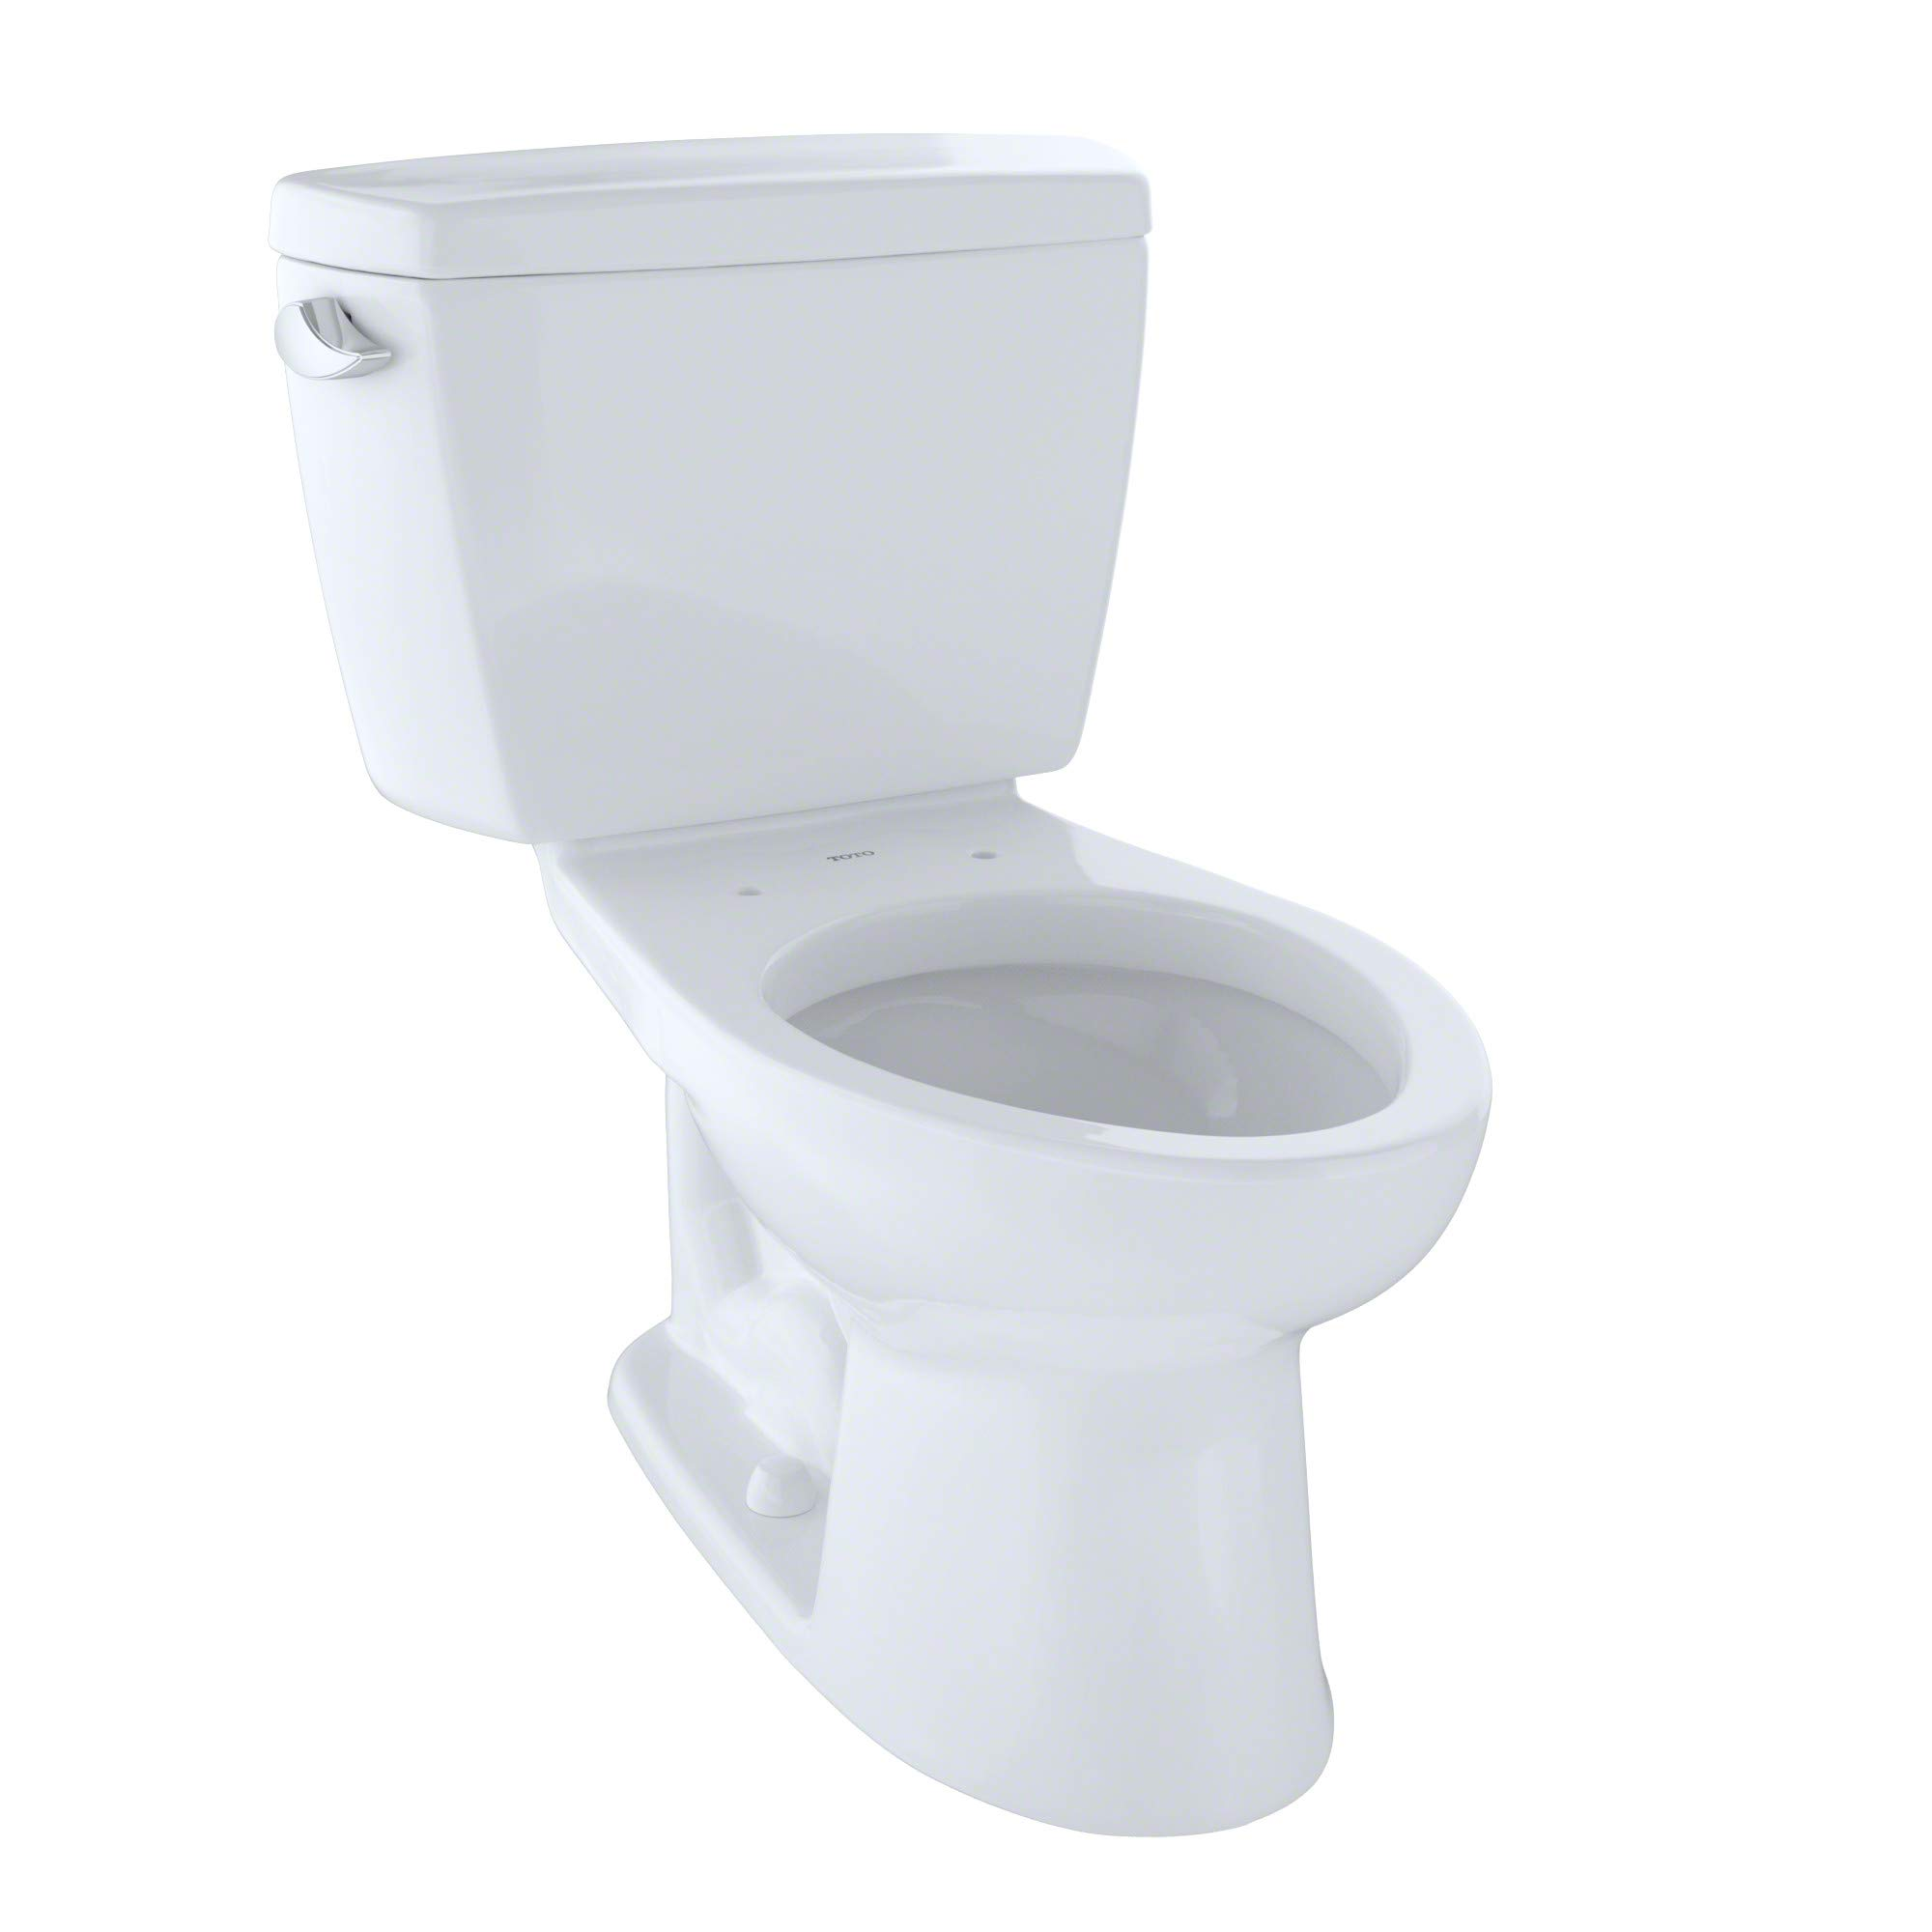 TOTO CST744SG#01 Drake 2-Piece Toilet with Elongated Bowl and Sanagloss,1.6 GPF, Glazed Cotton White by TOTO